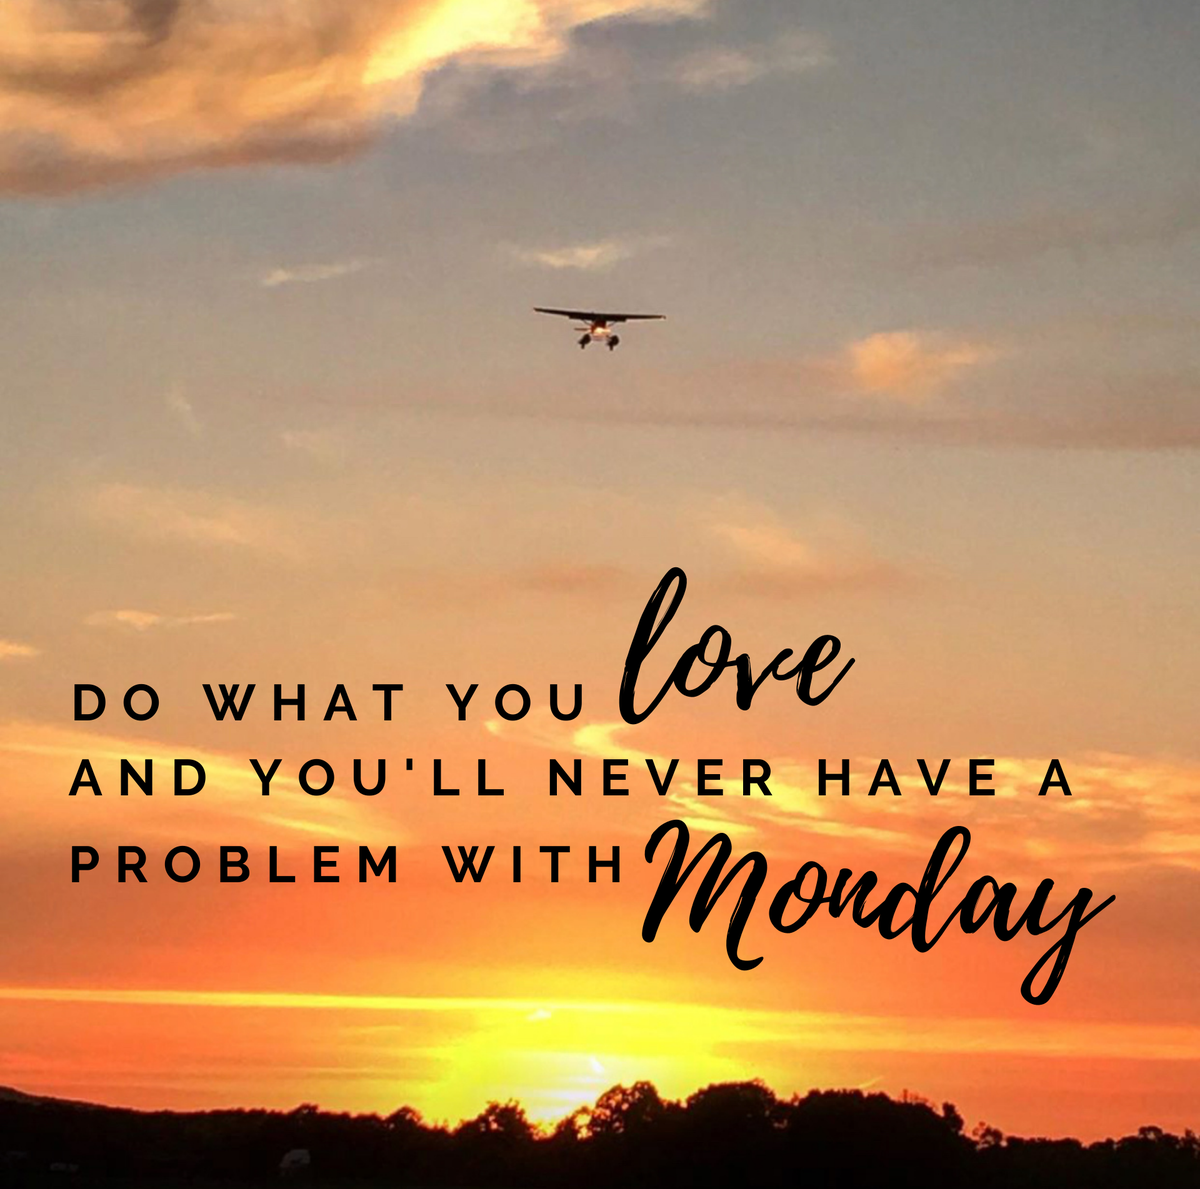 Like or retweet if you agree!   We hope everyone has a wonderful Monday and an even better week!  📸: @skjr  #FlyLevaero #MondayMotivation #Fly #Aviation #BusinessAviation #AvGeek #Travel https://t.co/nqc0IHf32s